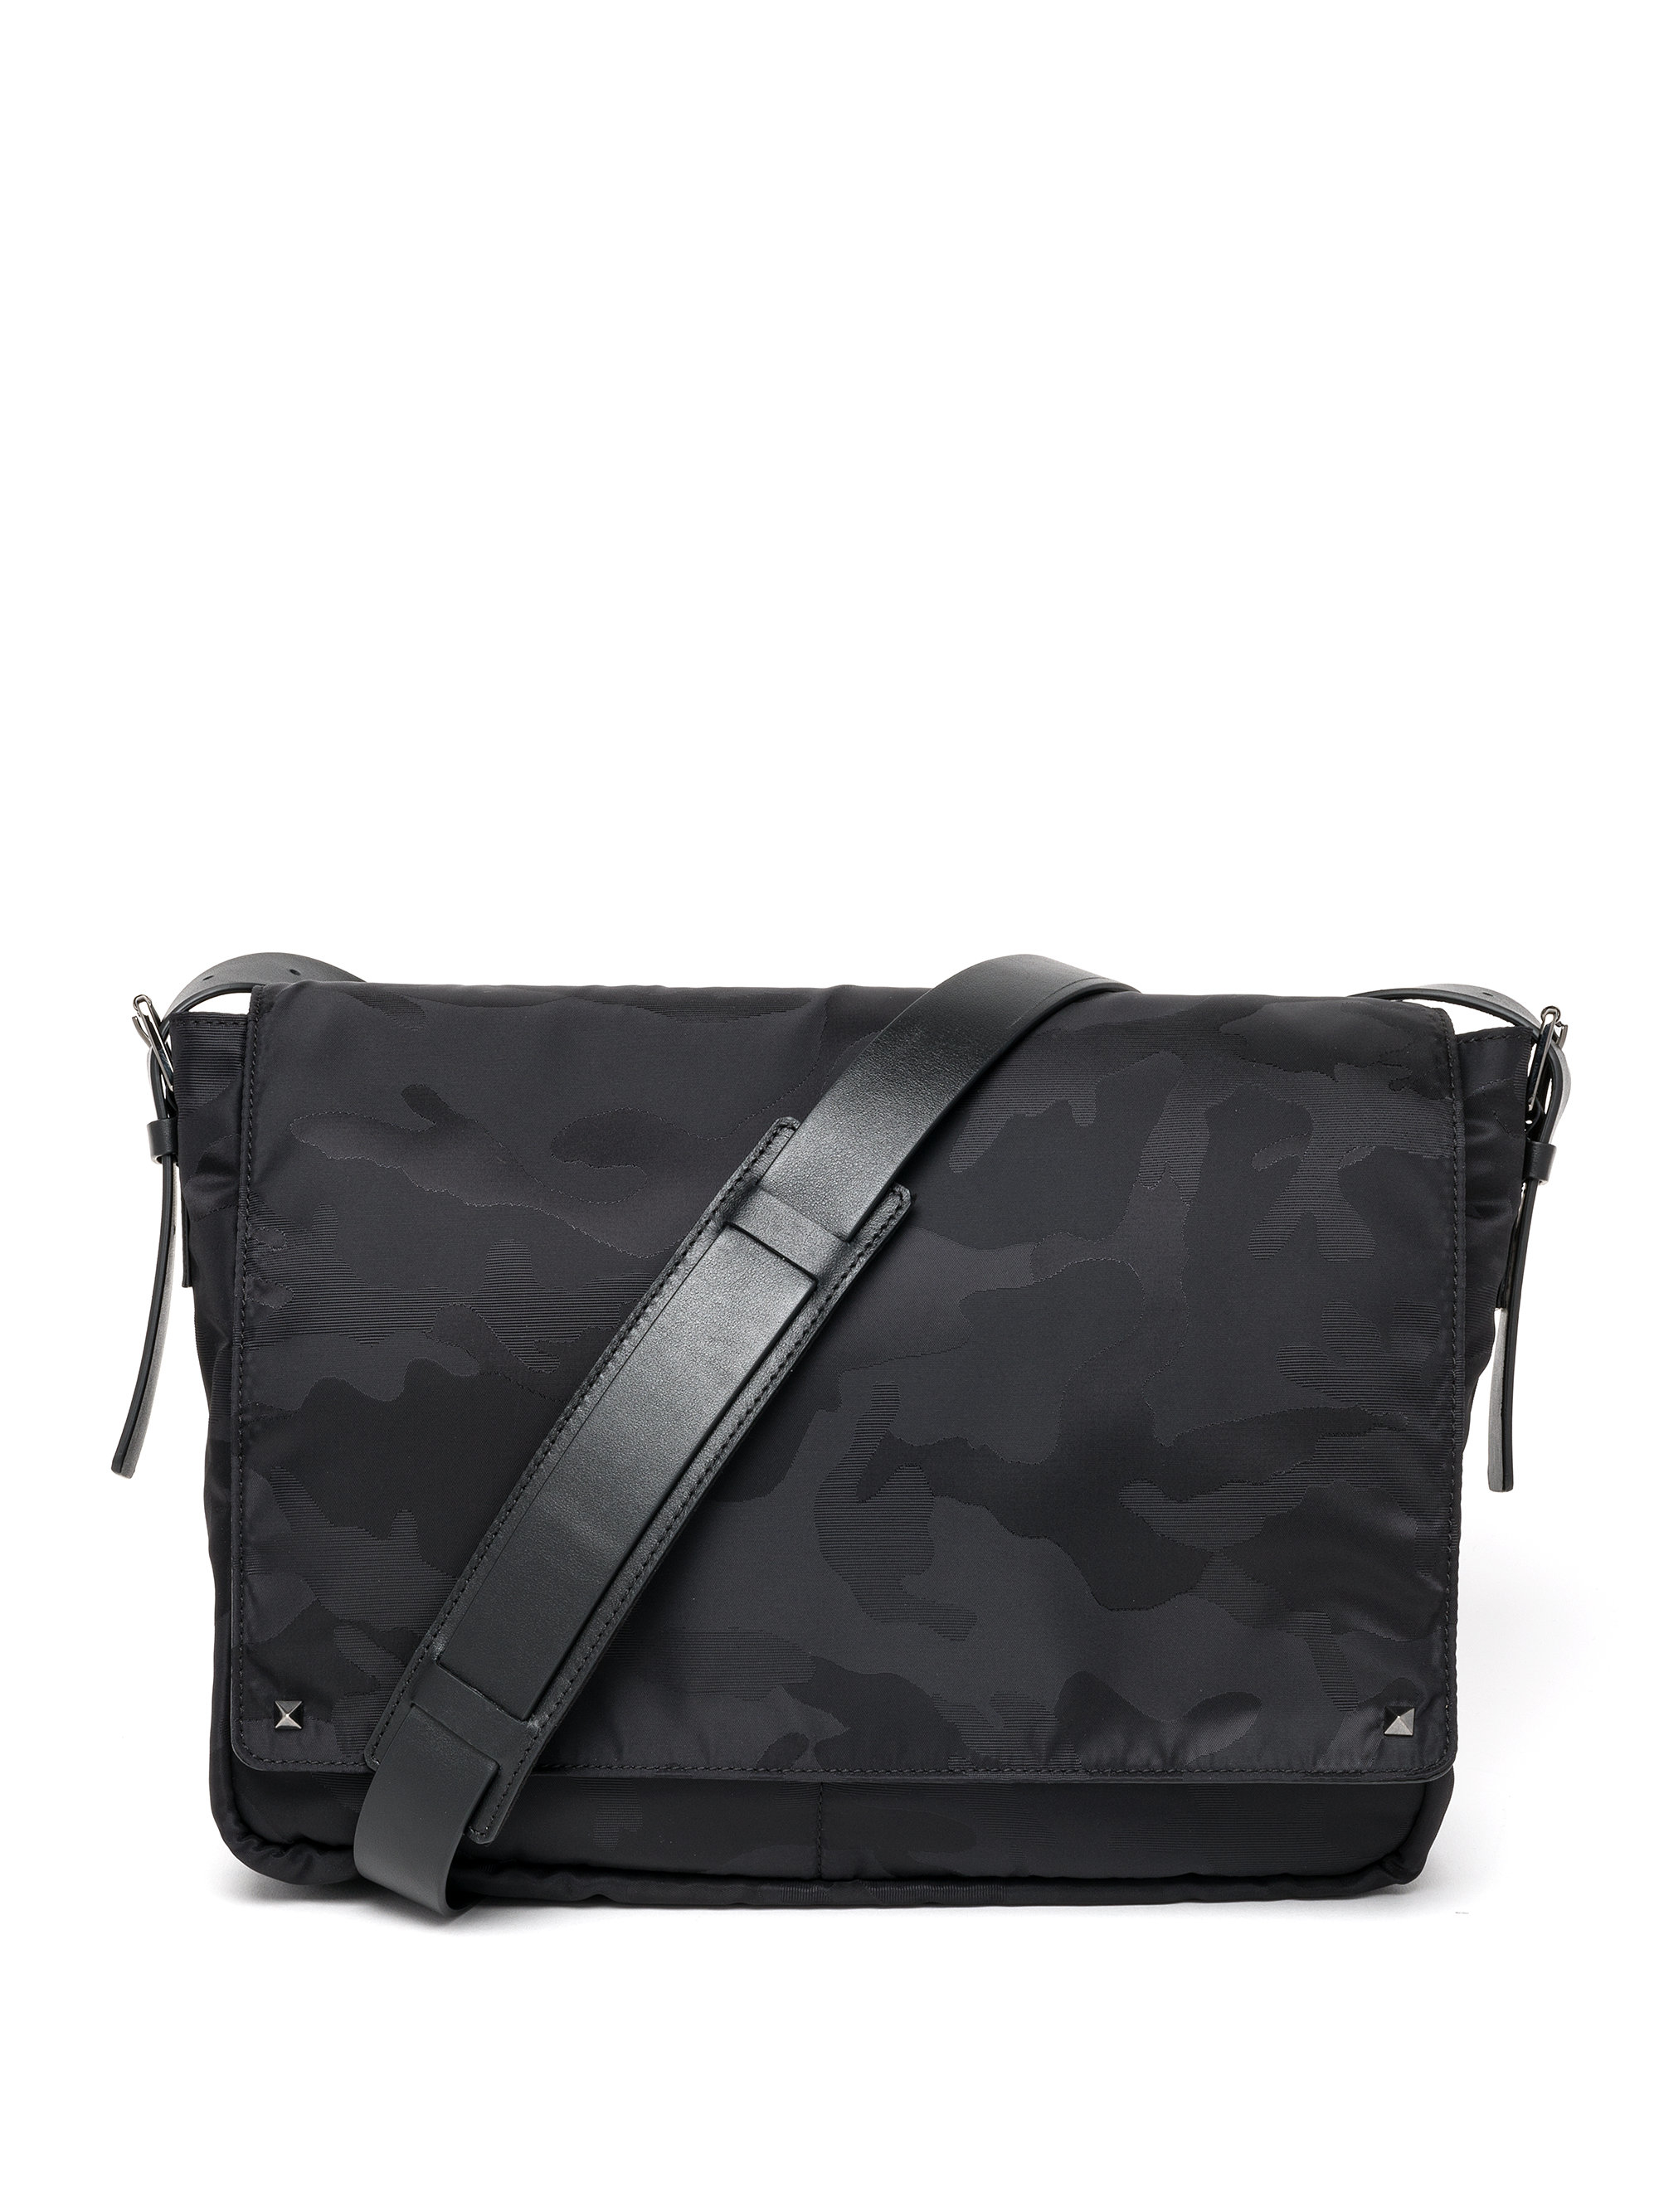 Black camouflage shoulder bag Valentino mRzORFy6qR